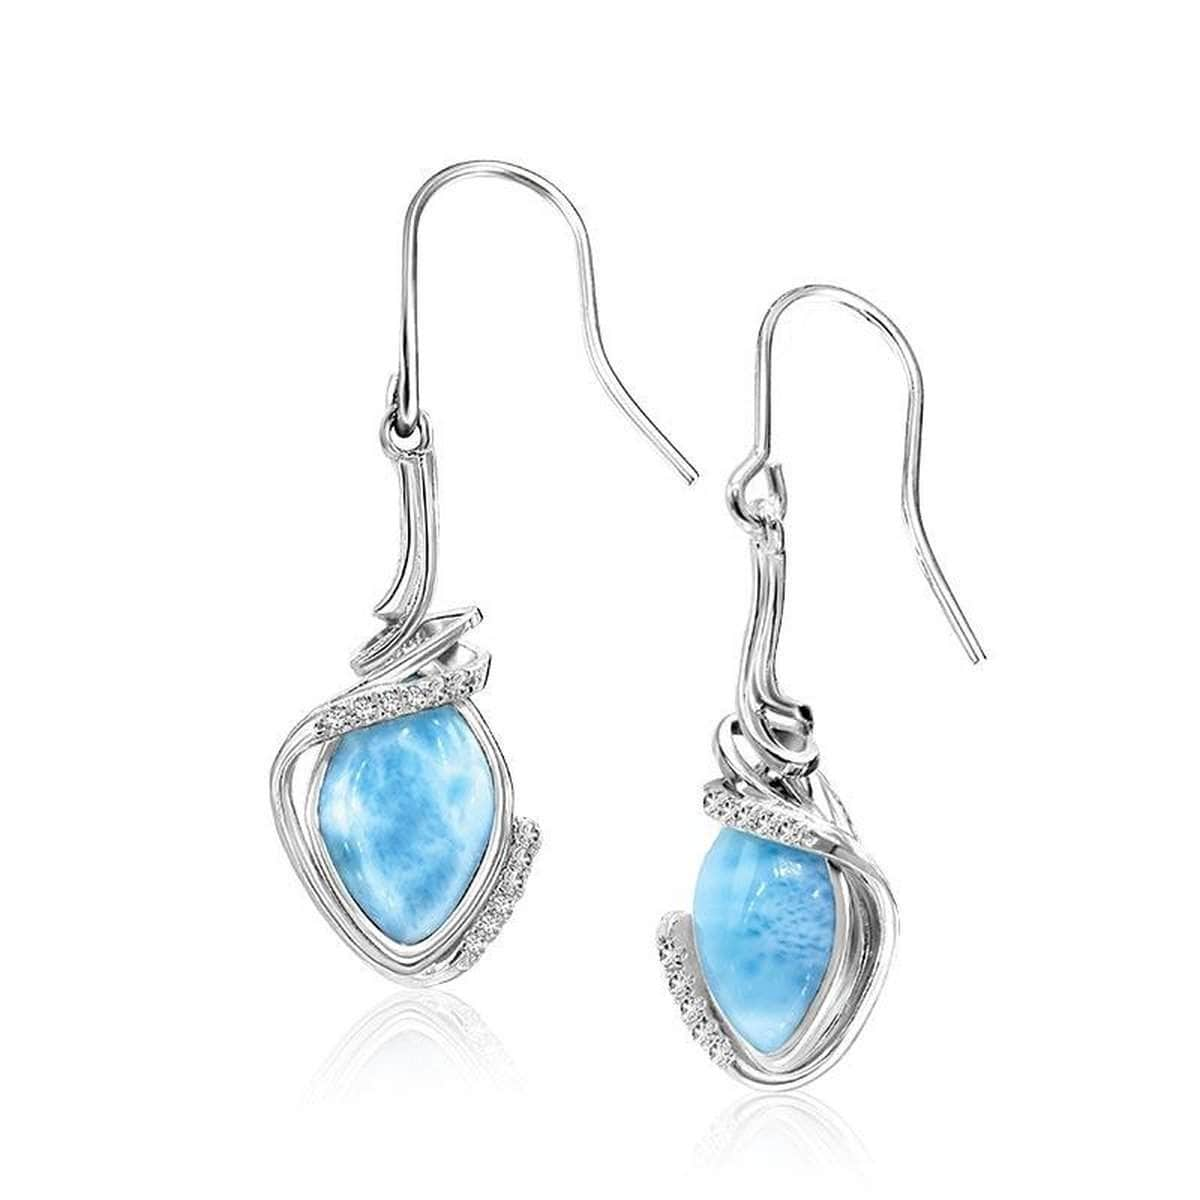 Calypso Earrings - Ecaly00-00-Marahlago Larimar-Renee Taylor Gallery